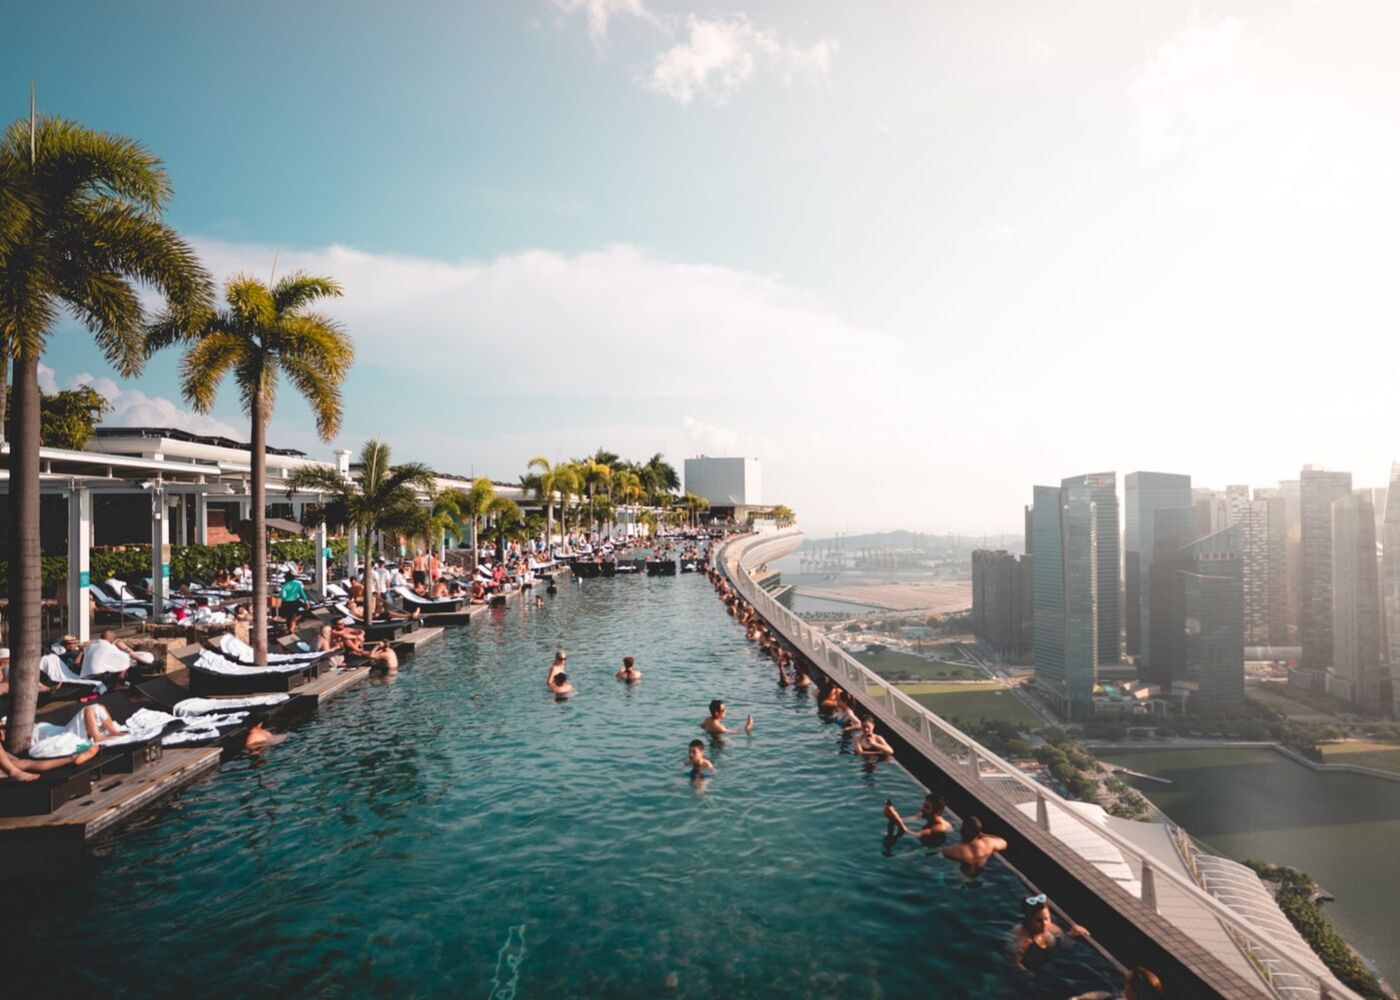 Marina Bay Sands' infinity pool is Singapore's crown jewel